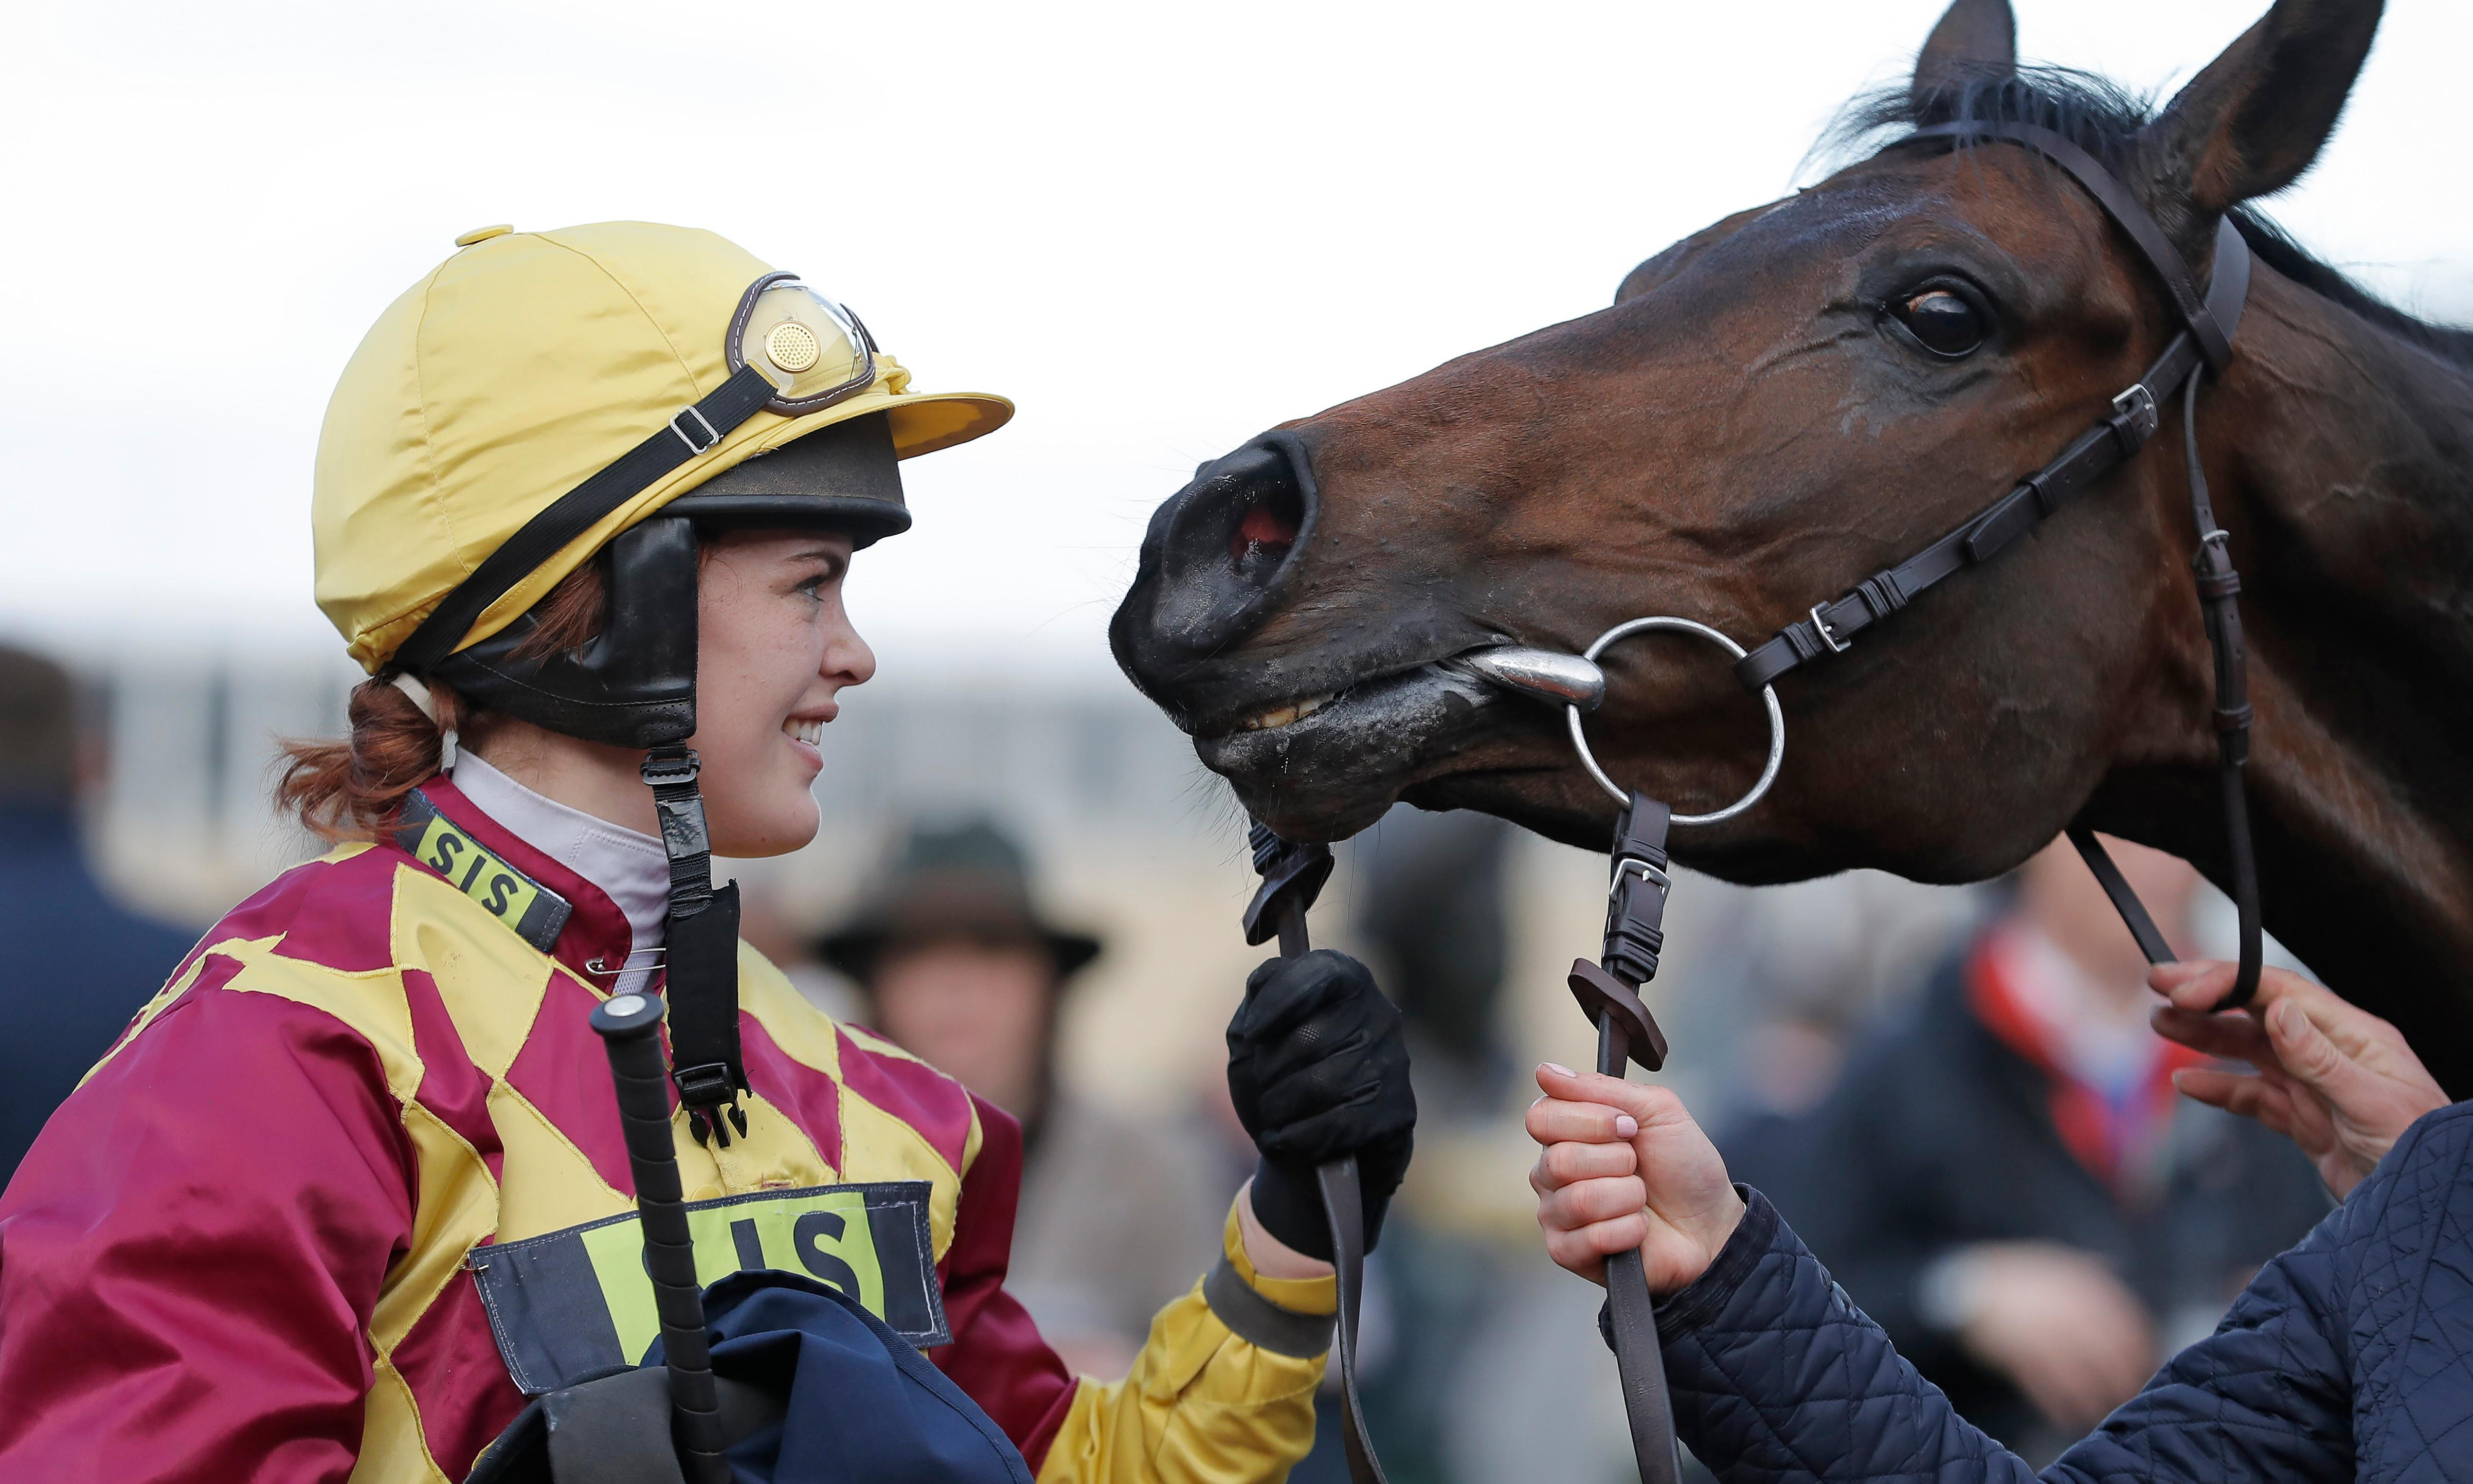 Lizzie Kelly aims at Aintree with Tea For Two, her 'horse of a lifetime'